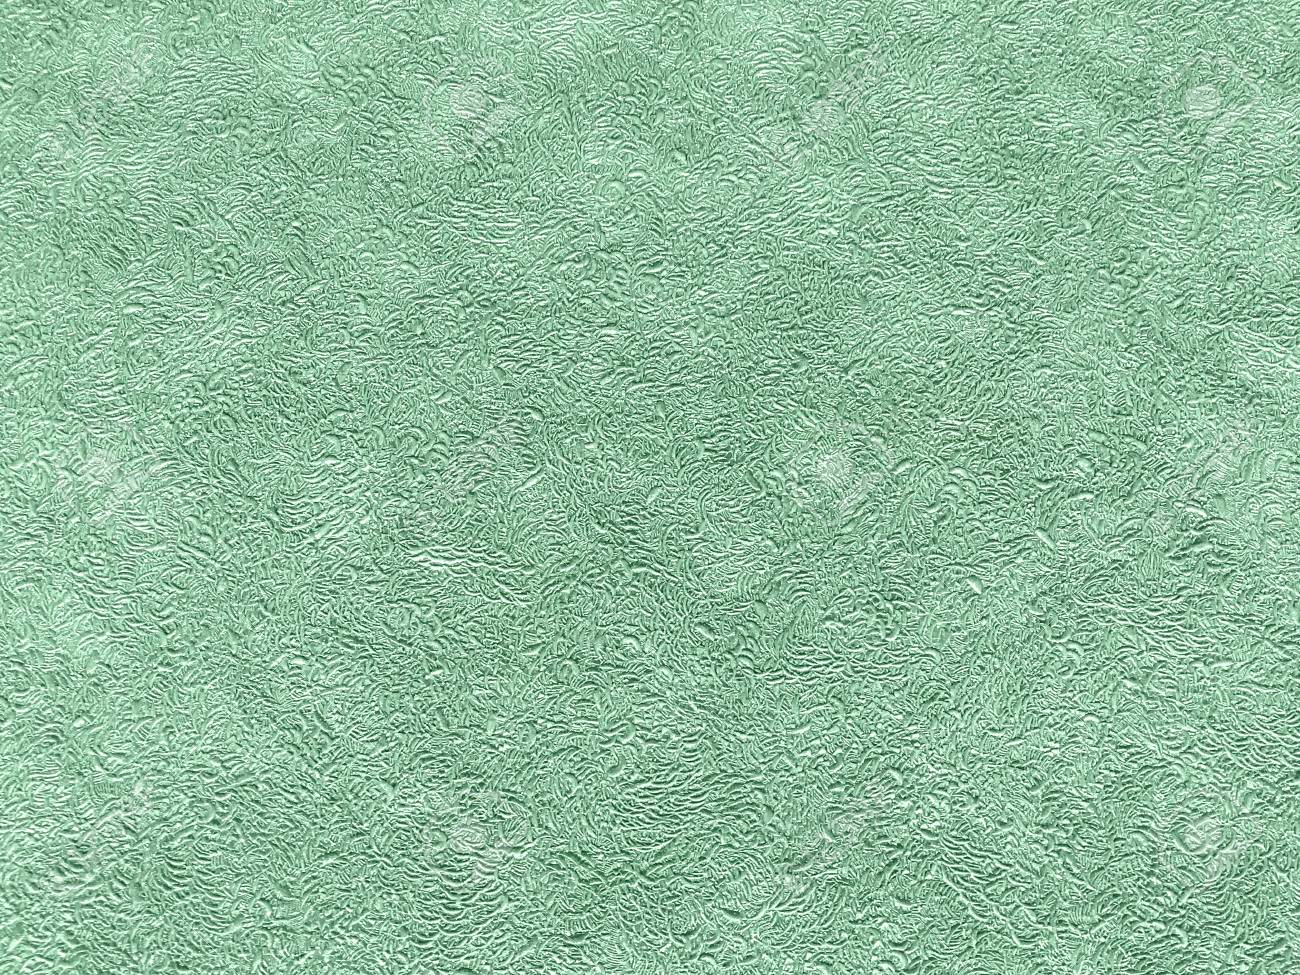 Texture Of Light Green Wallpaper With A Curly Pattern Cyan Paper Stock Photo Picture And Royalty Free Image Image 93136637